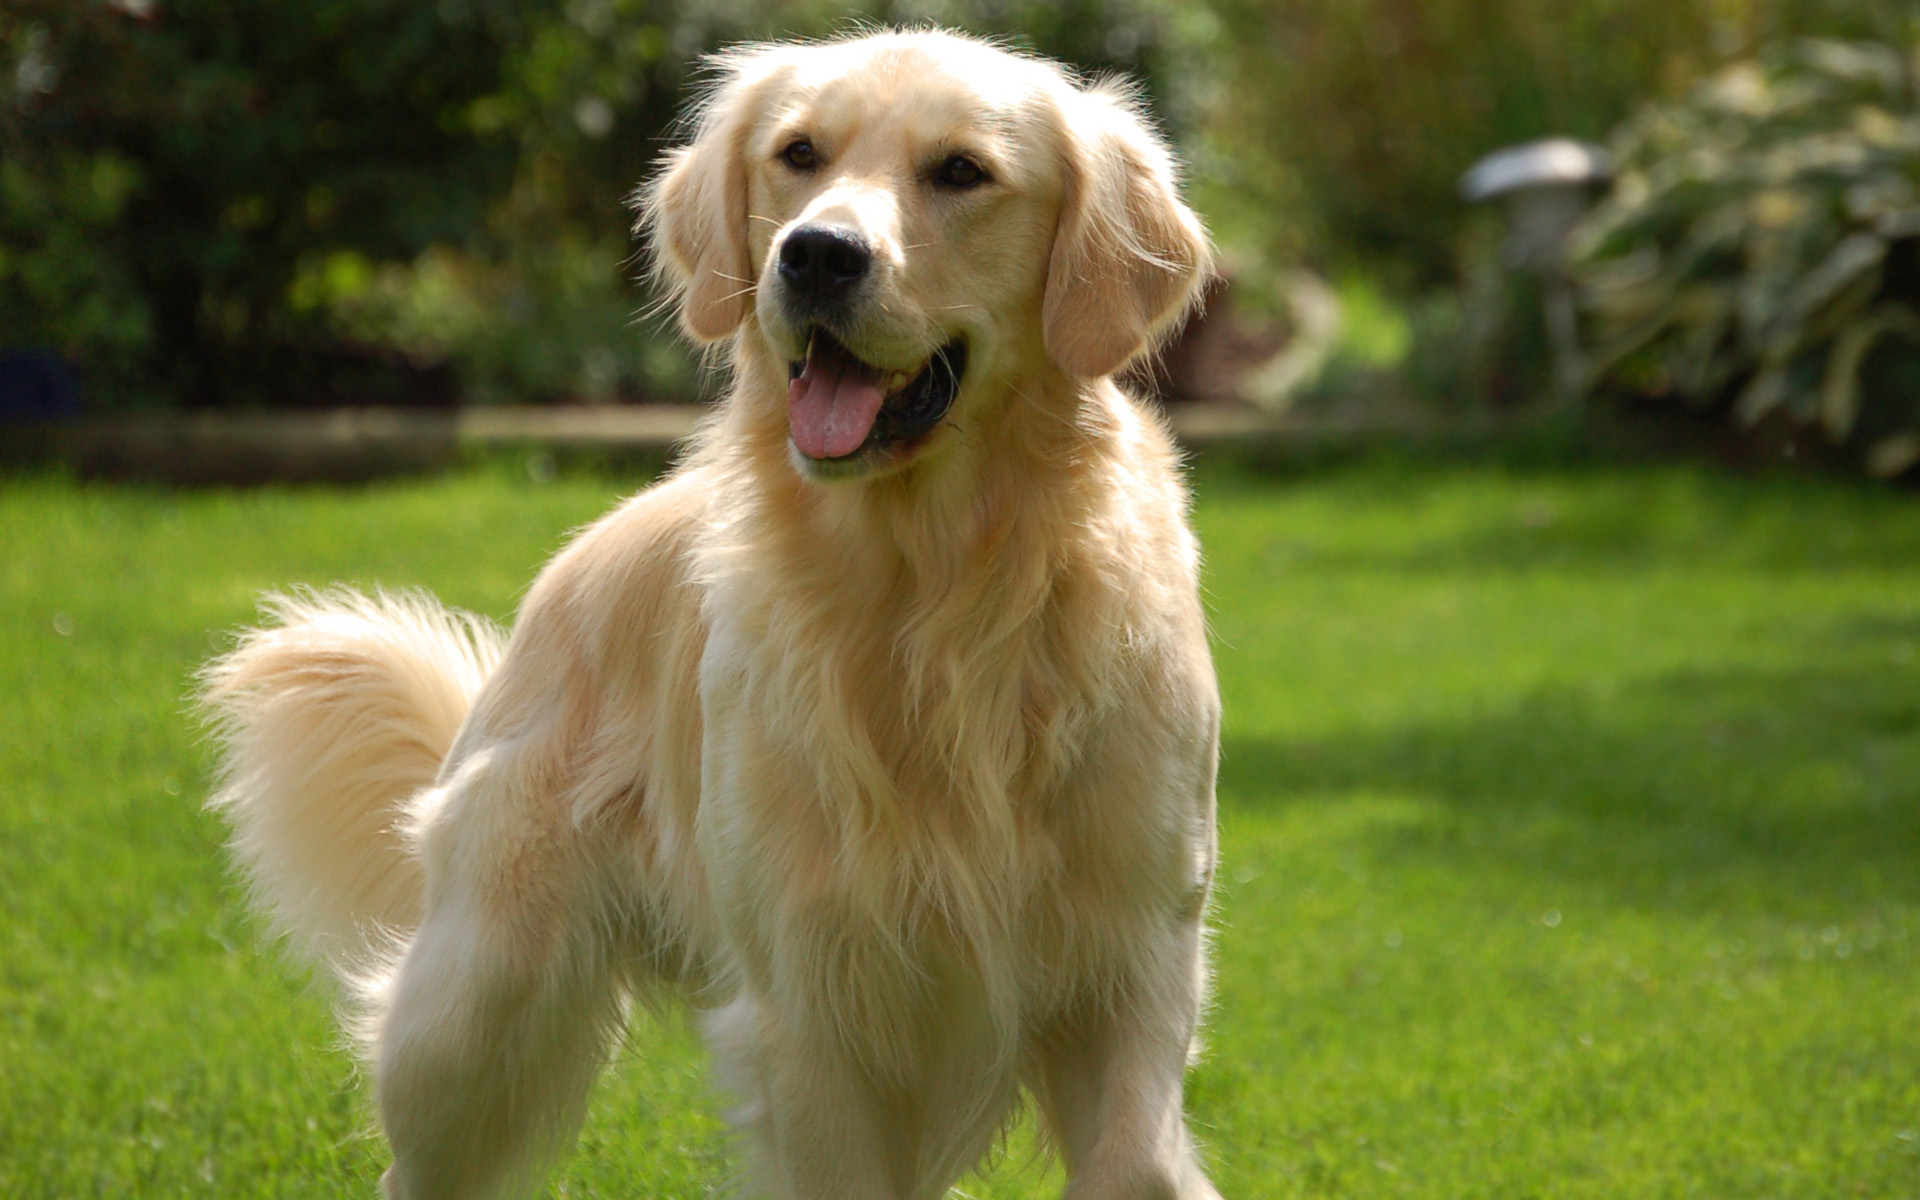 10 fun facts about golden retrievers 3milliondogs